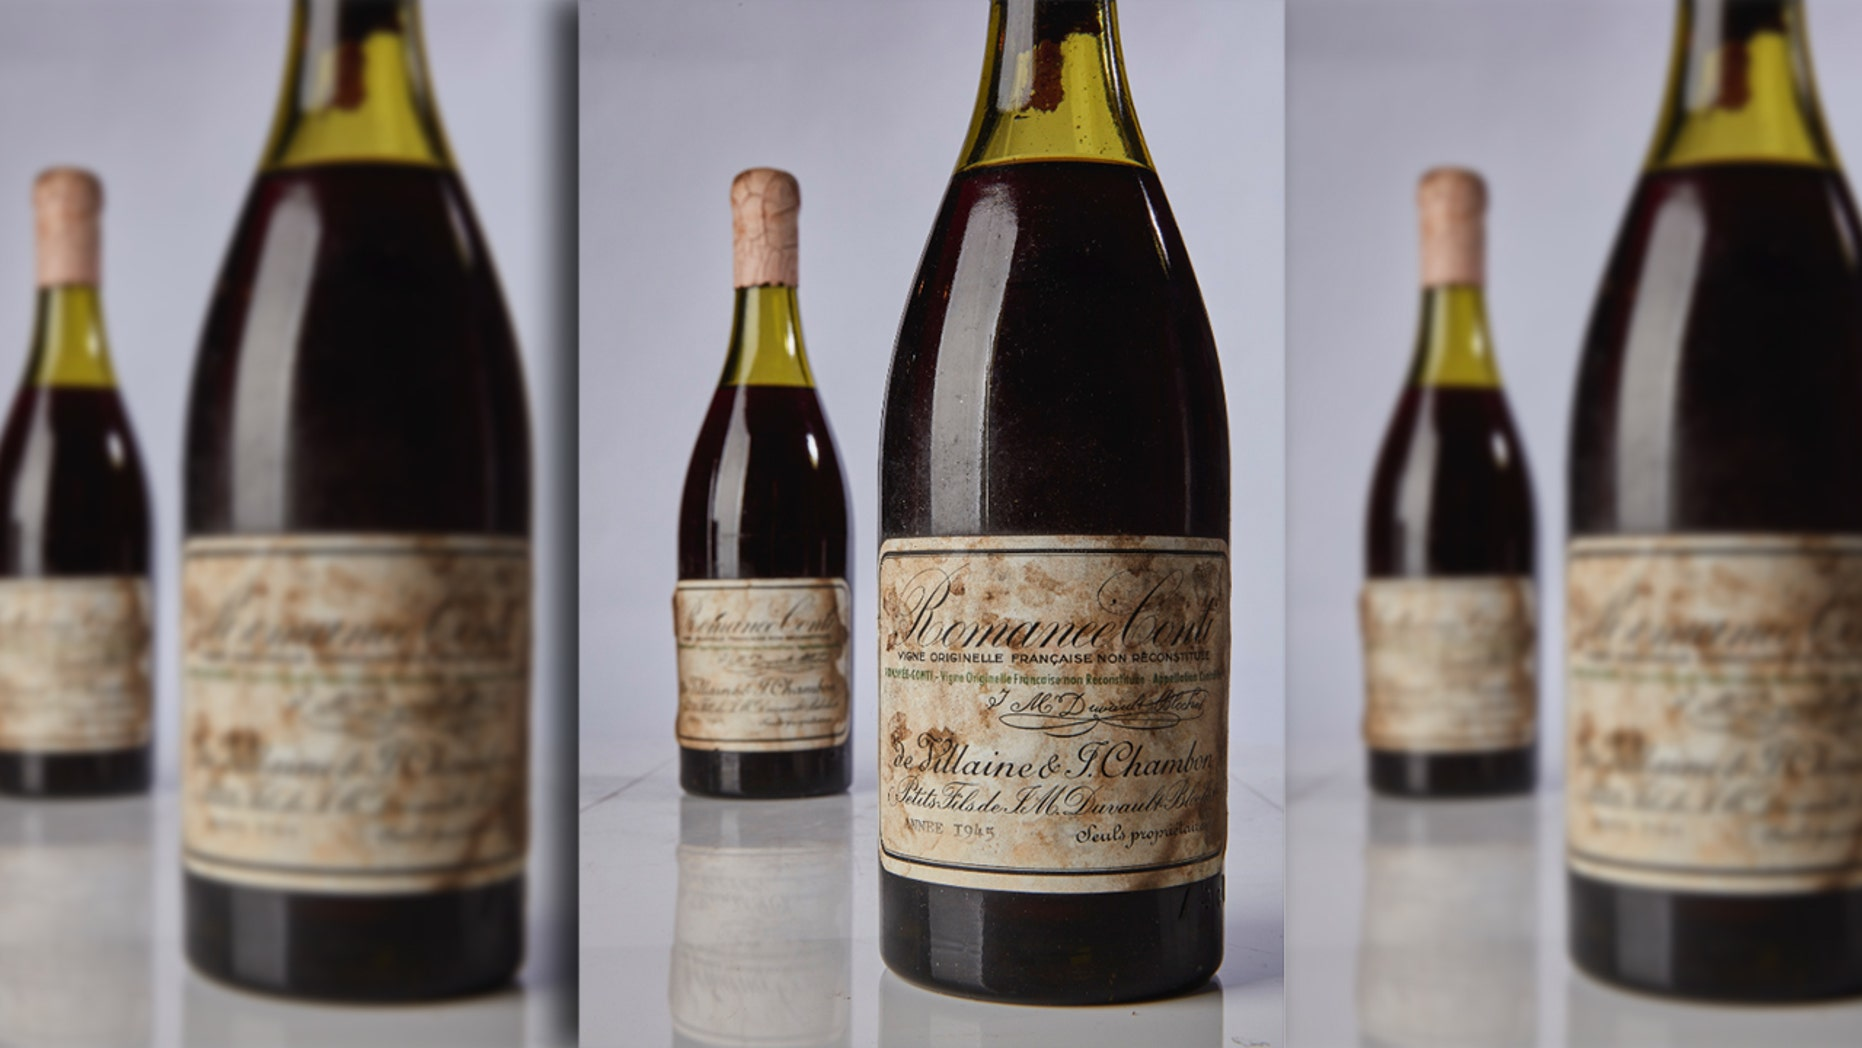 Five rare bottles of French wine sold for record amounts at auction Saturday.